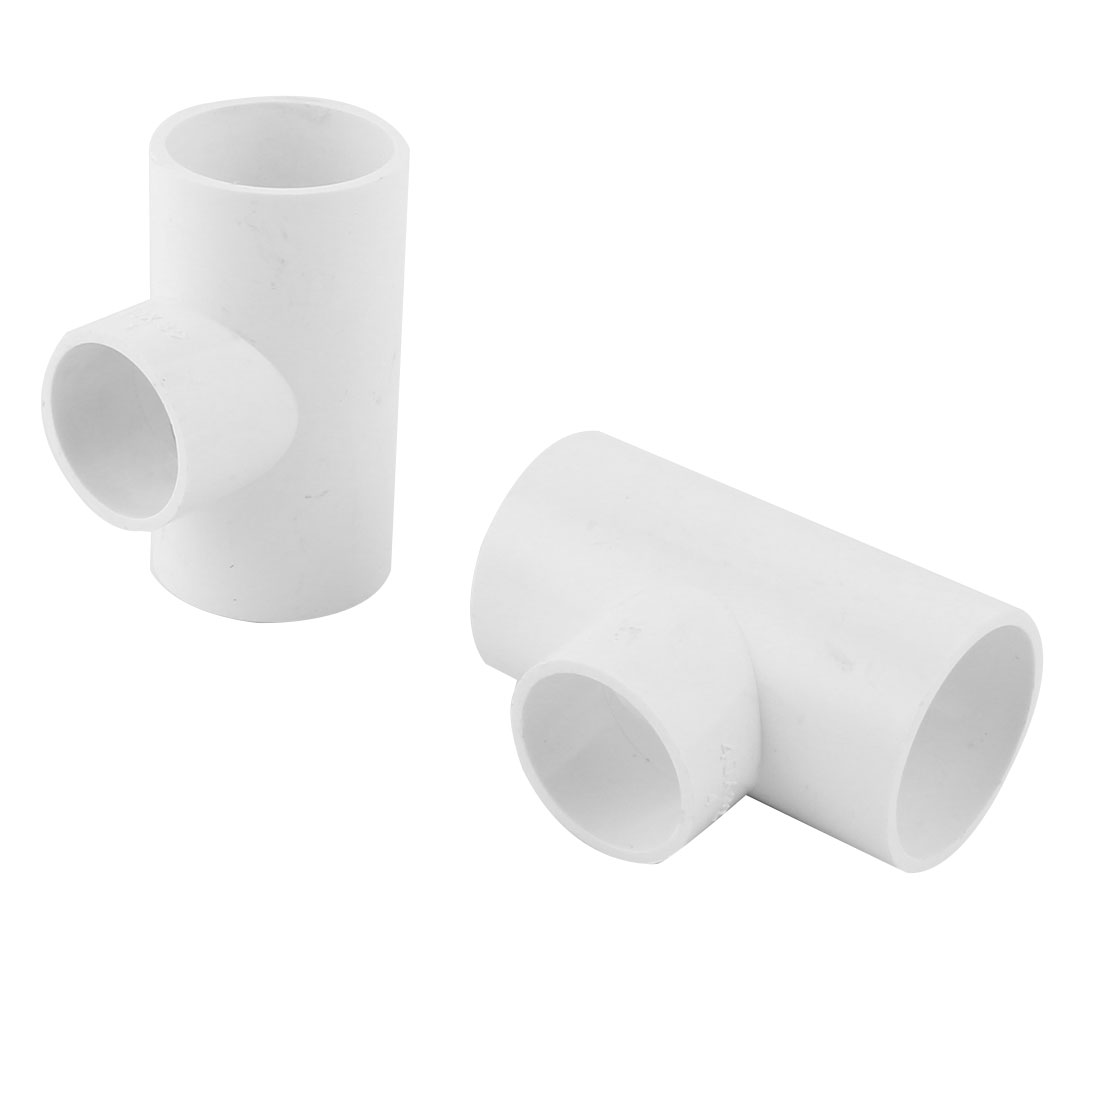 Industrial Home PVC 3 Way Distributary Water Drainage Pipe Fitting Adapter Connector 2pcs